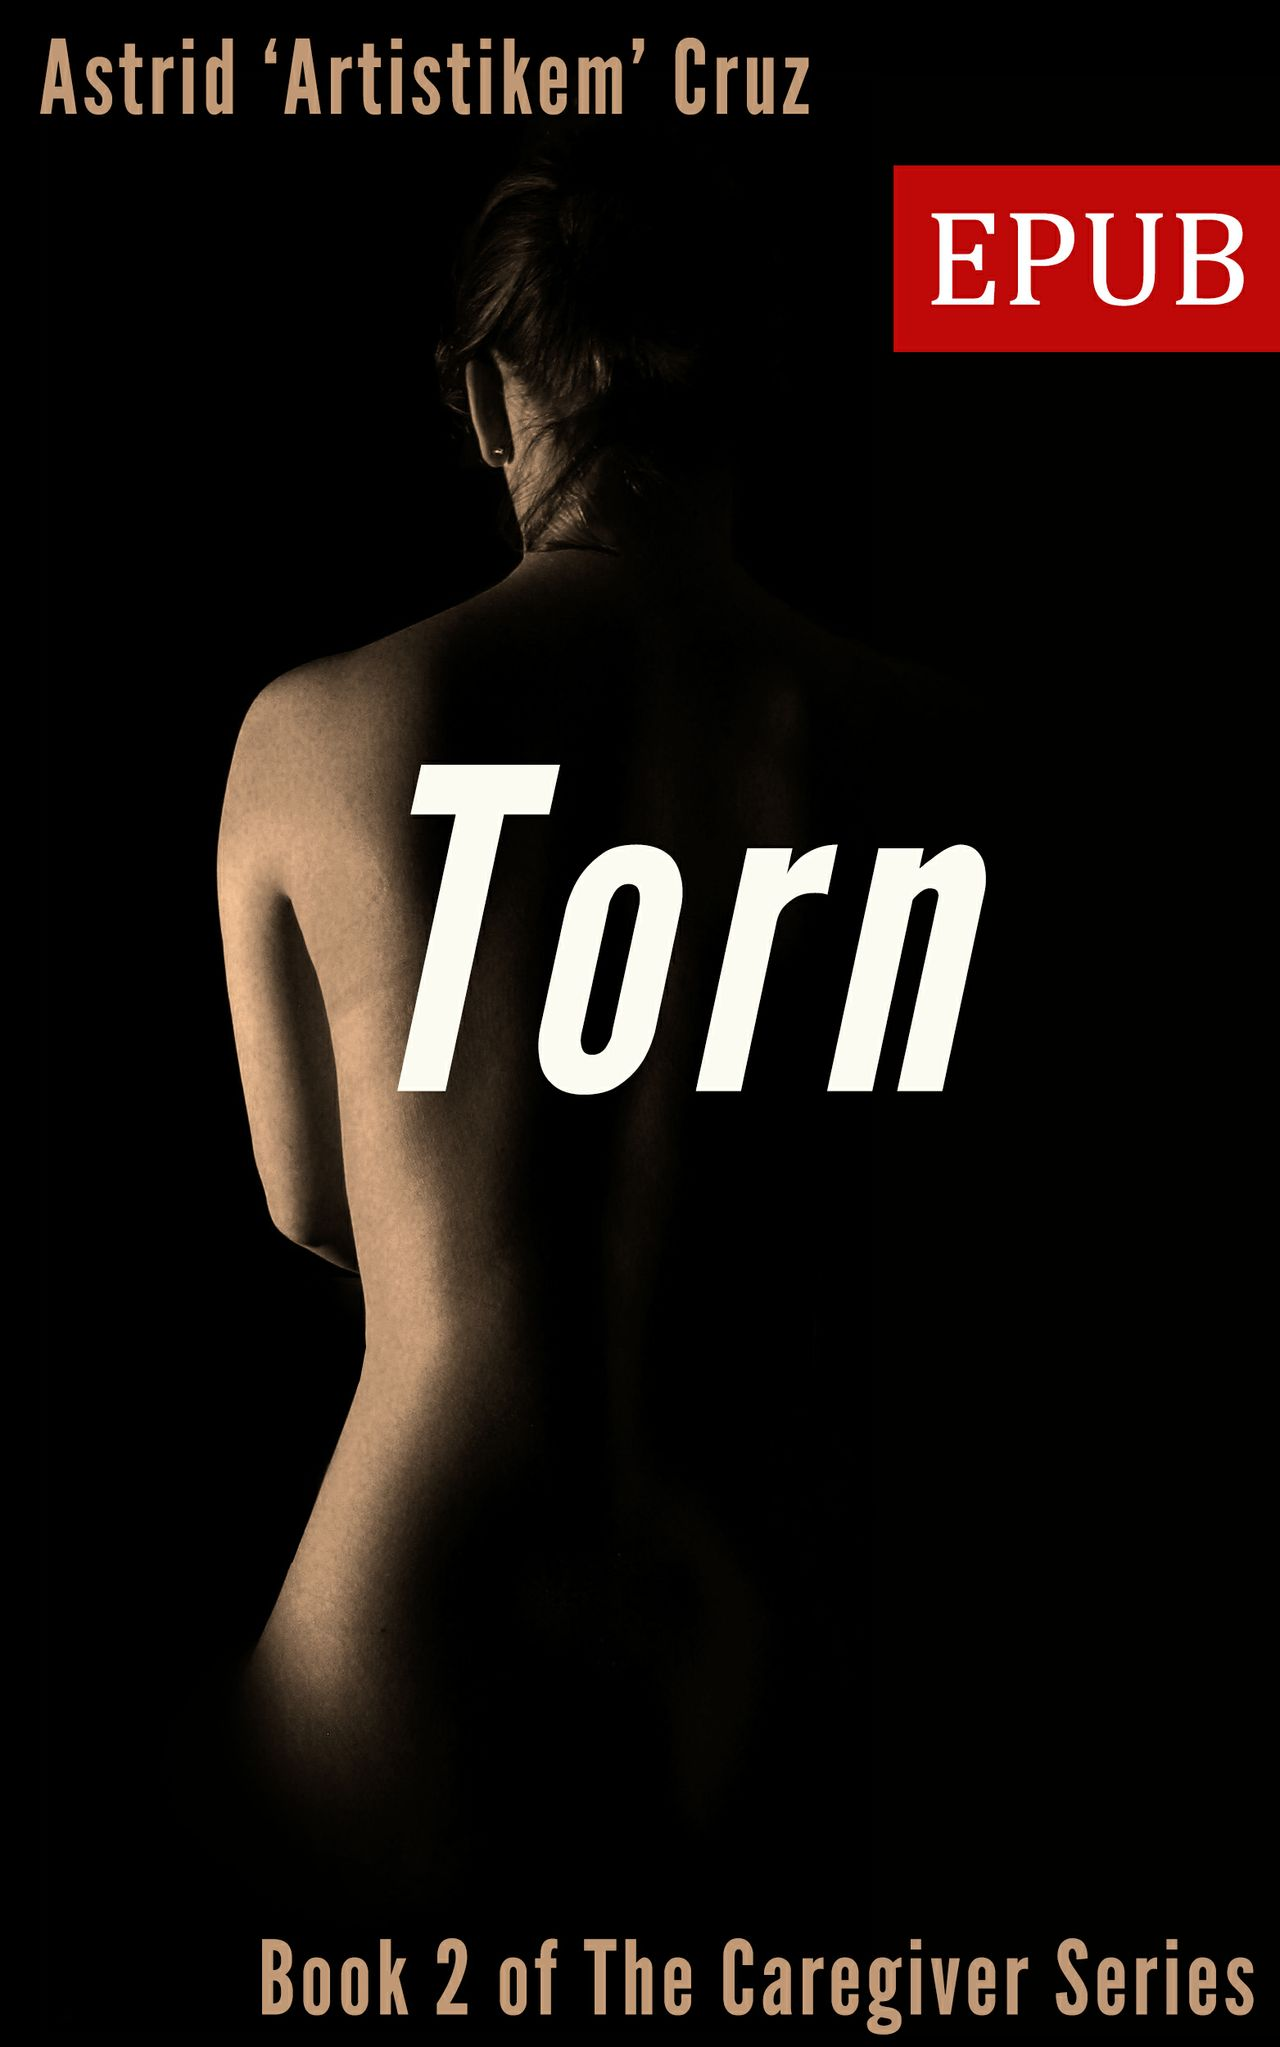 Torn (Book 2 of The Caregiver Series) - ePub